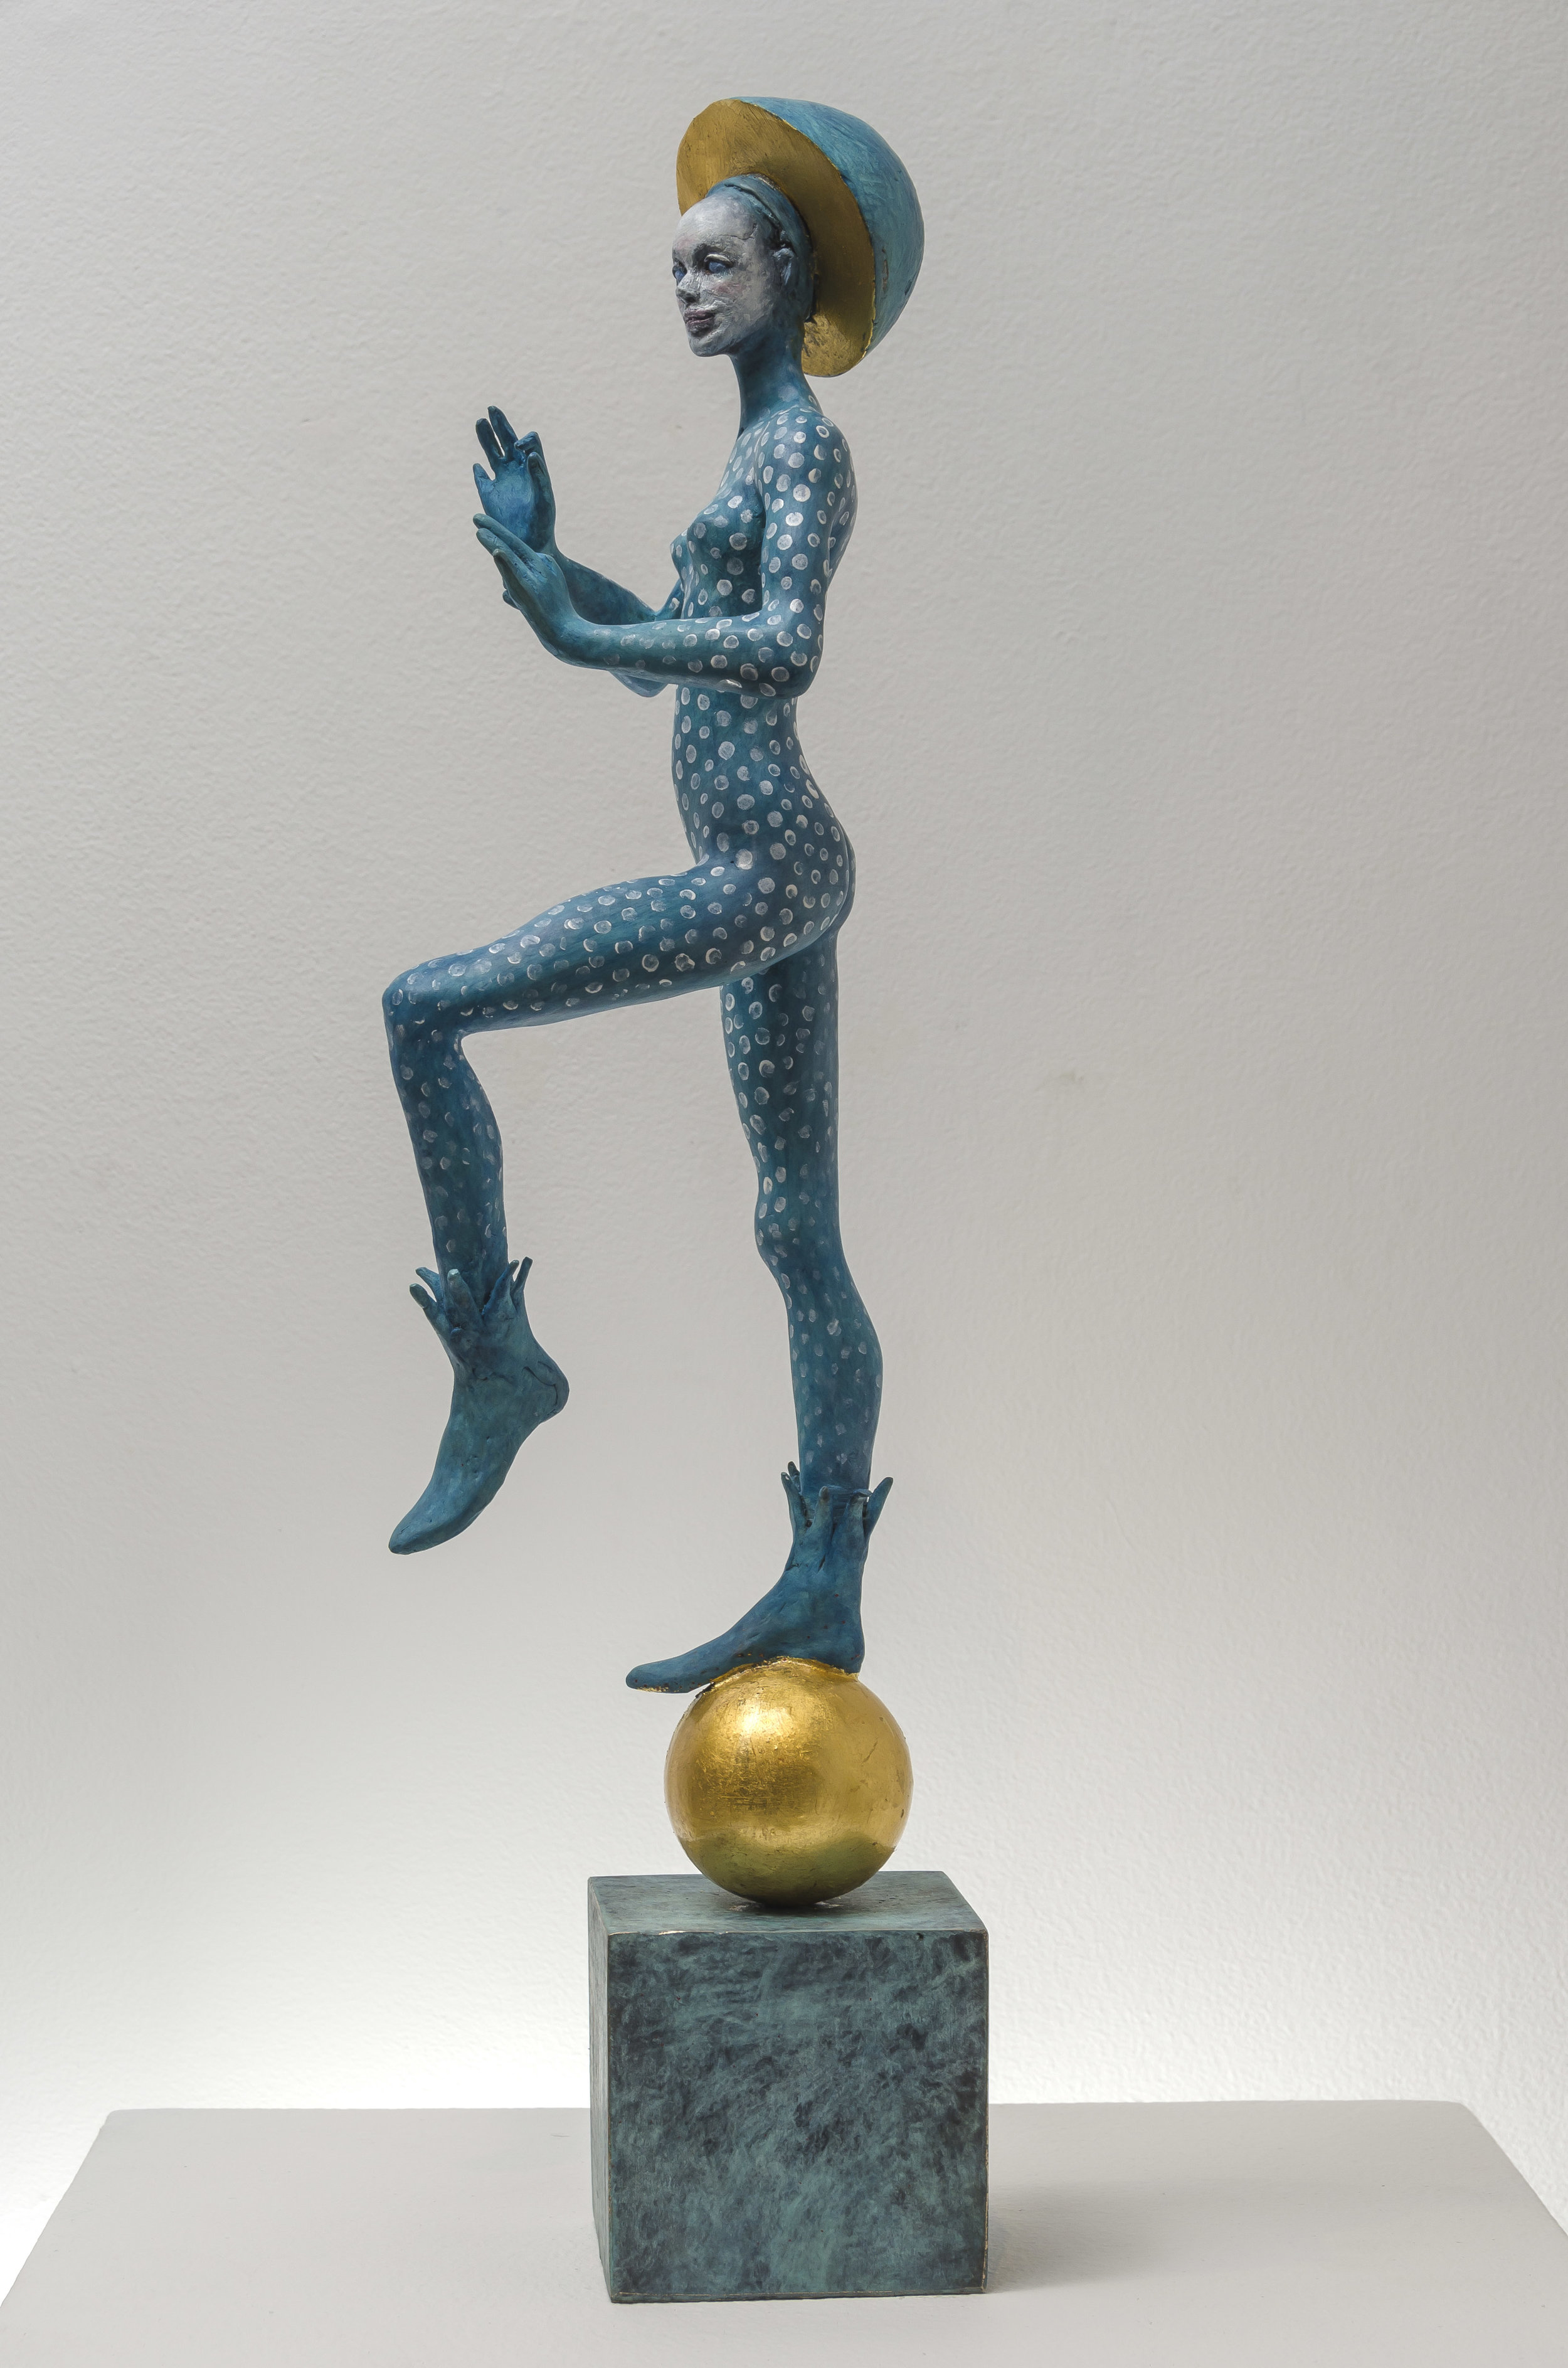 Dancer , 2019  gold leaf and oil paint on patinated bronze 20 x 6 x 6 inches; 50.8 x 15.2 x 15.2 centimeters  $16,000